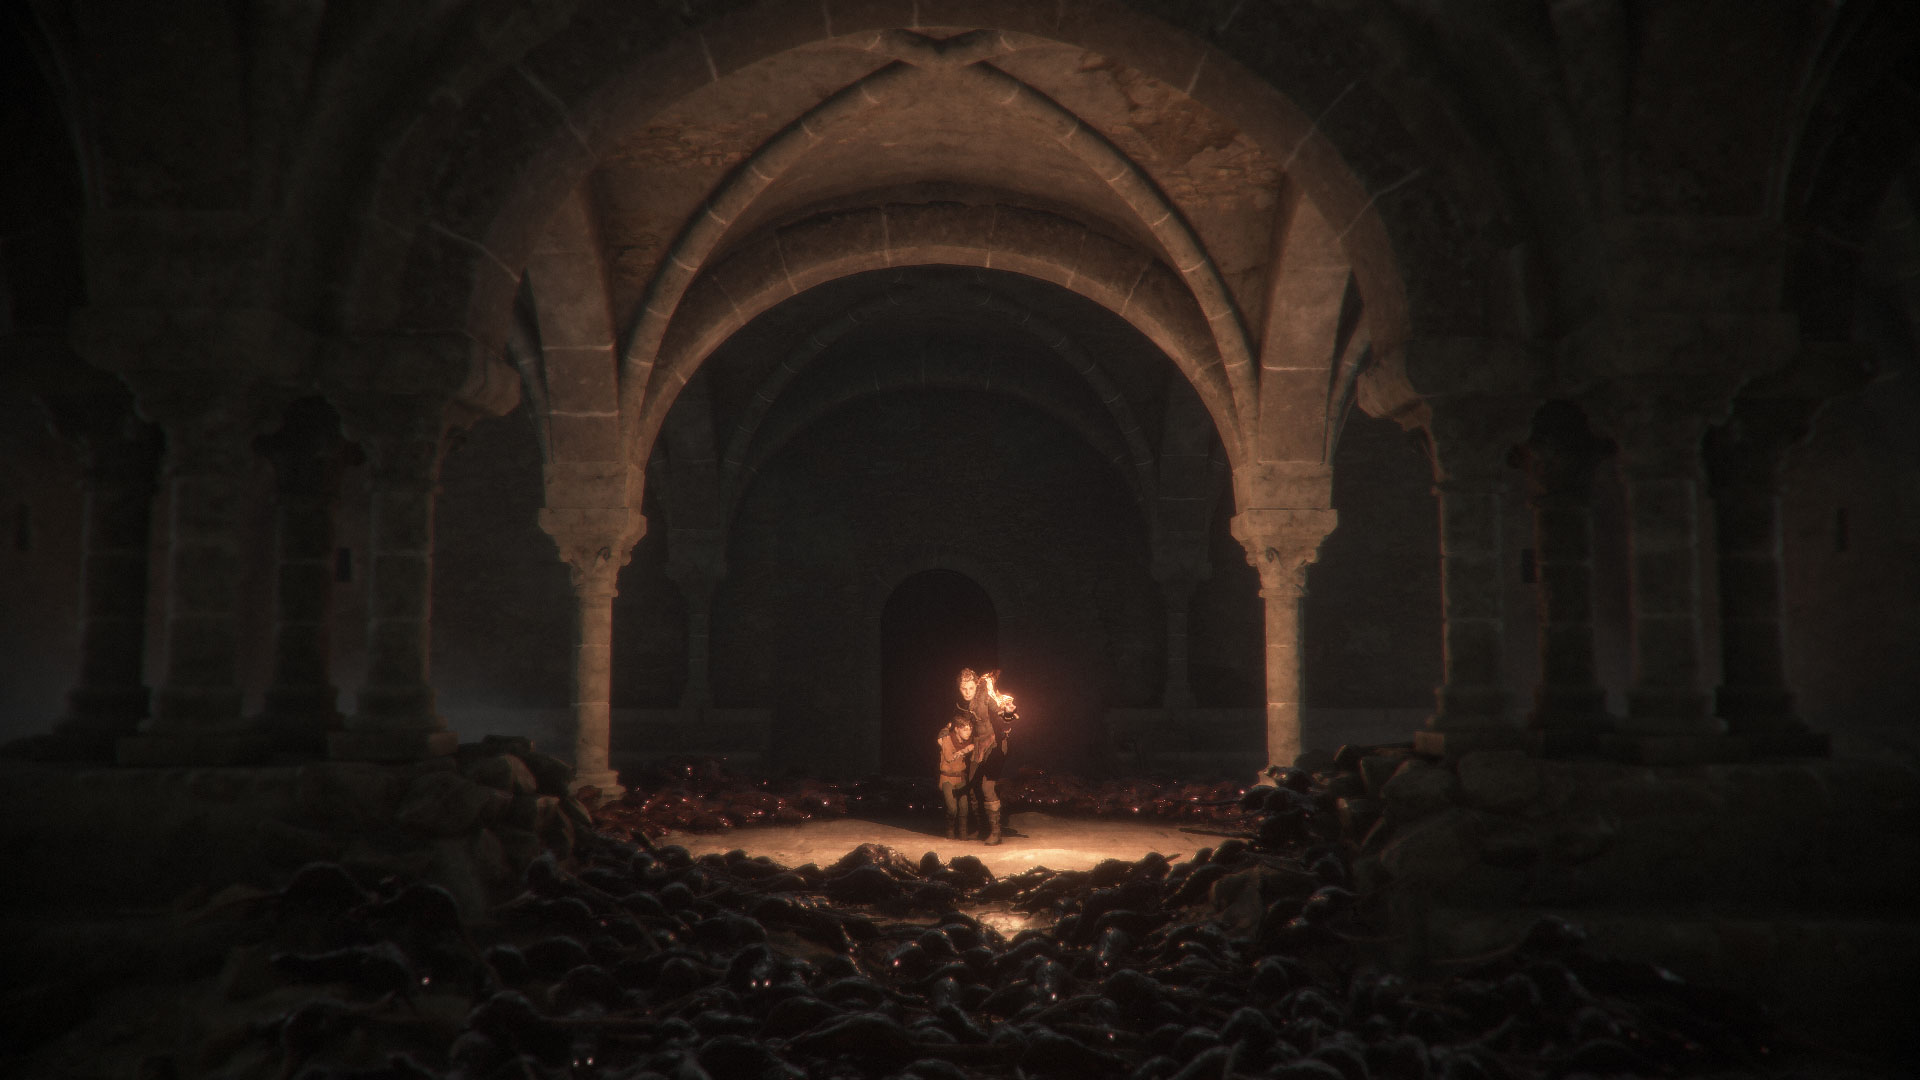 Inside the catacombs of A Plague Tale: Innocence